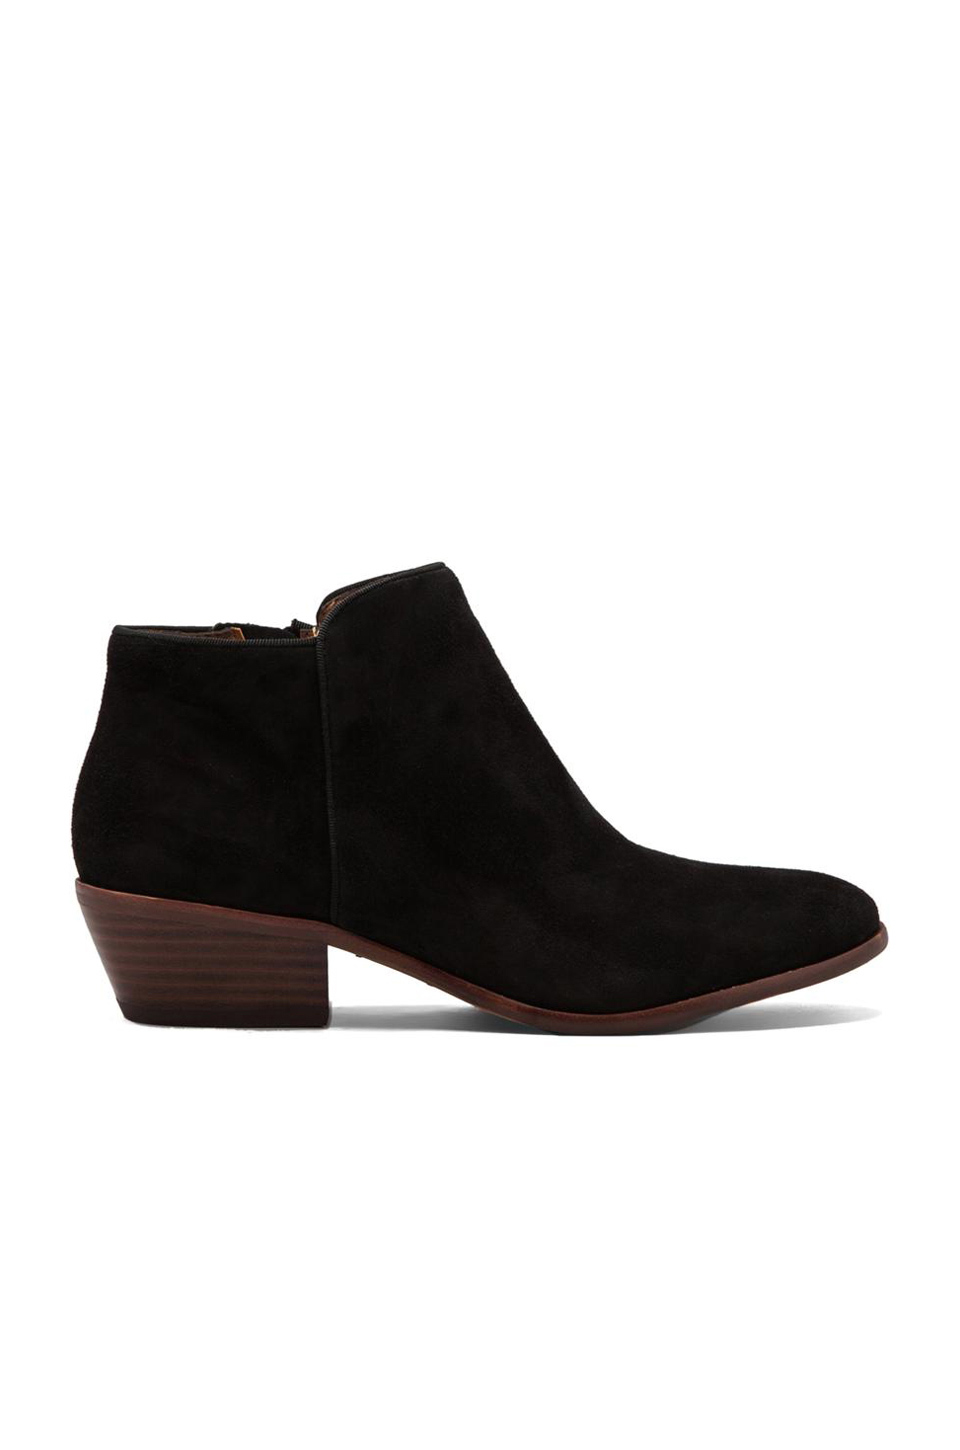 Petty Low-Cut Suede Ankle Boots, Black Suede